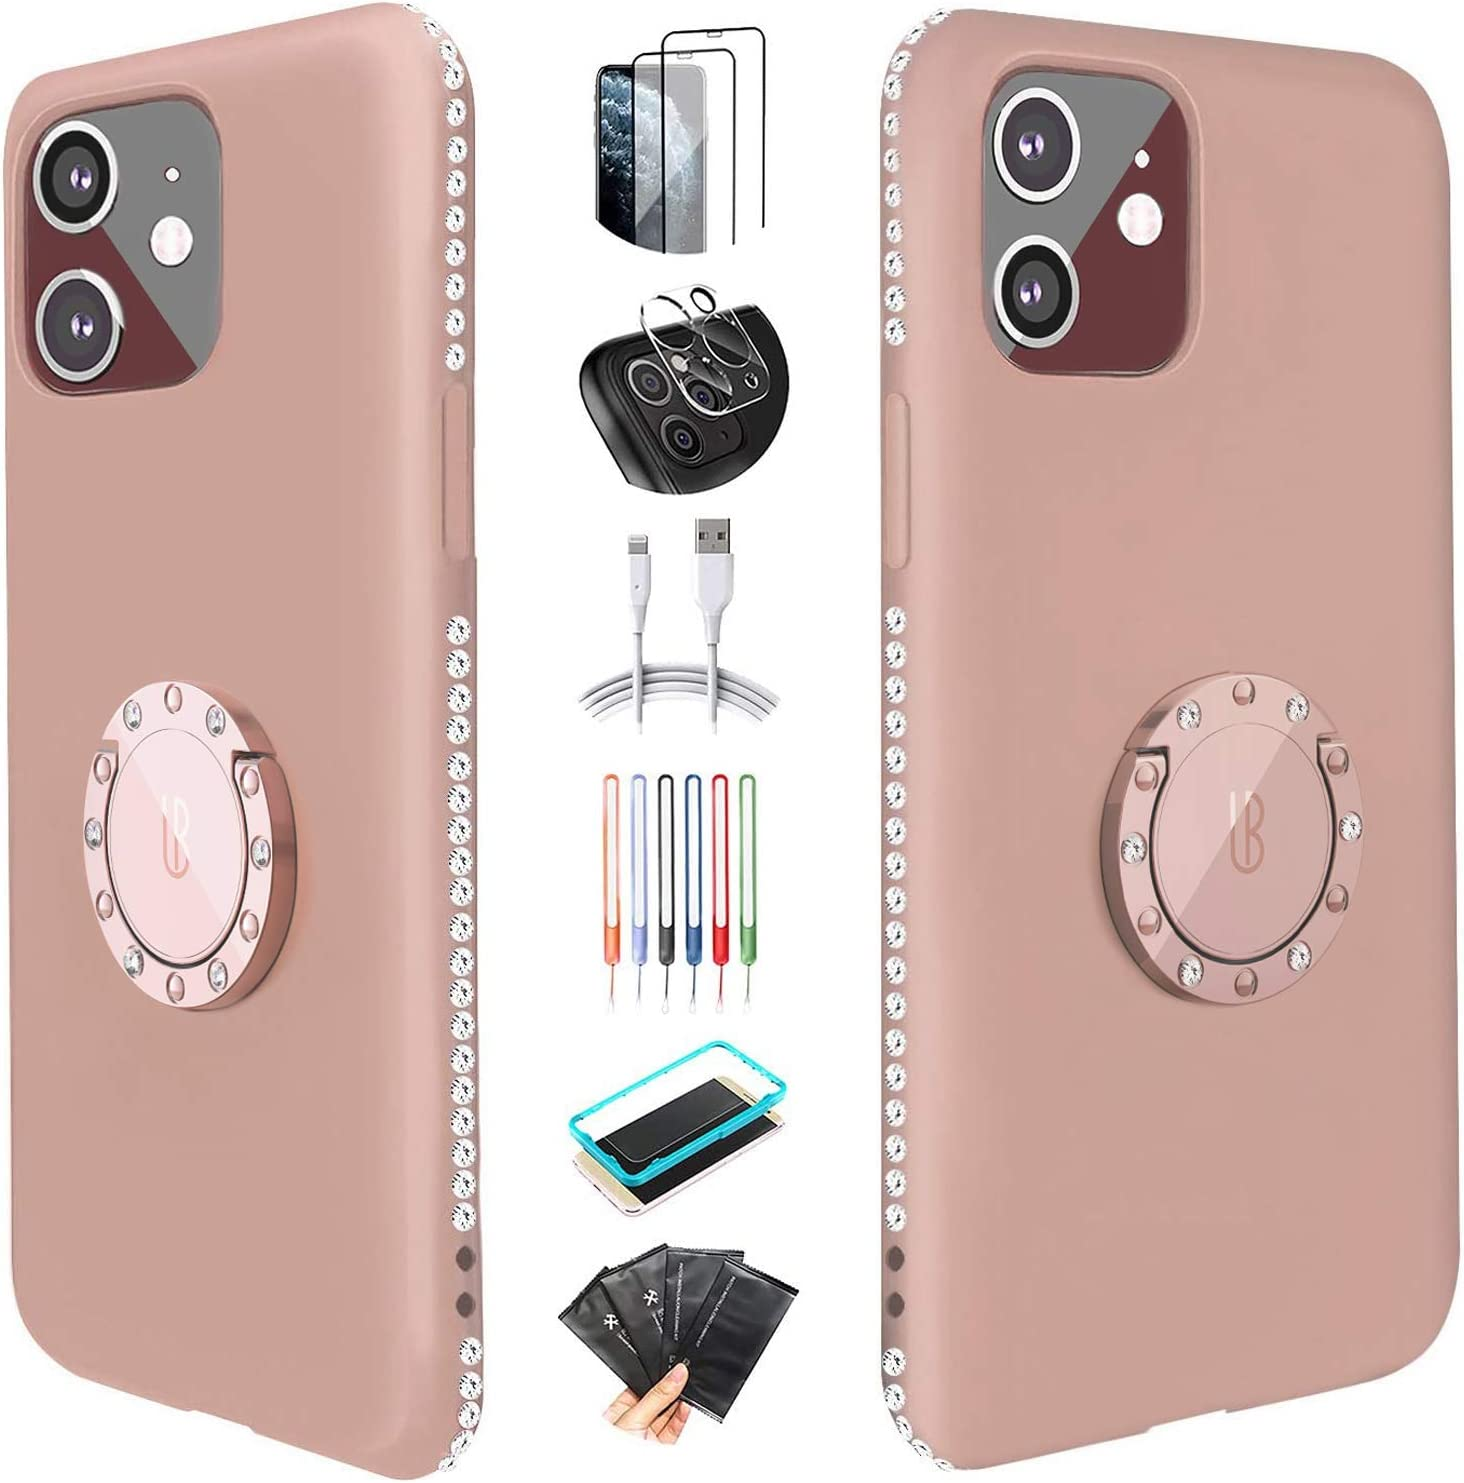 [Super Giveaways] UBUNU Silicone iPhone 11 Case for Women, Liquid Silicone Glitter Bling Rhinestone Bumper with Ring Kickstand Grip Holder Girly Cute iPhone 11 Case for Girl 6.1 inch - Sandy Pink